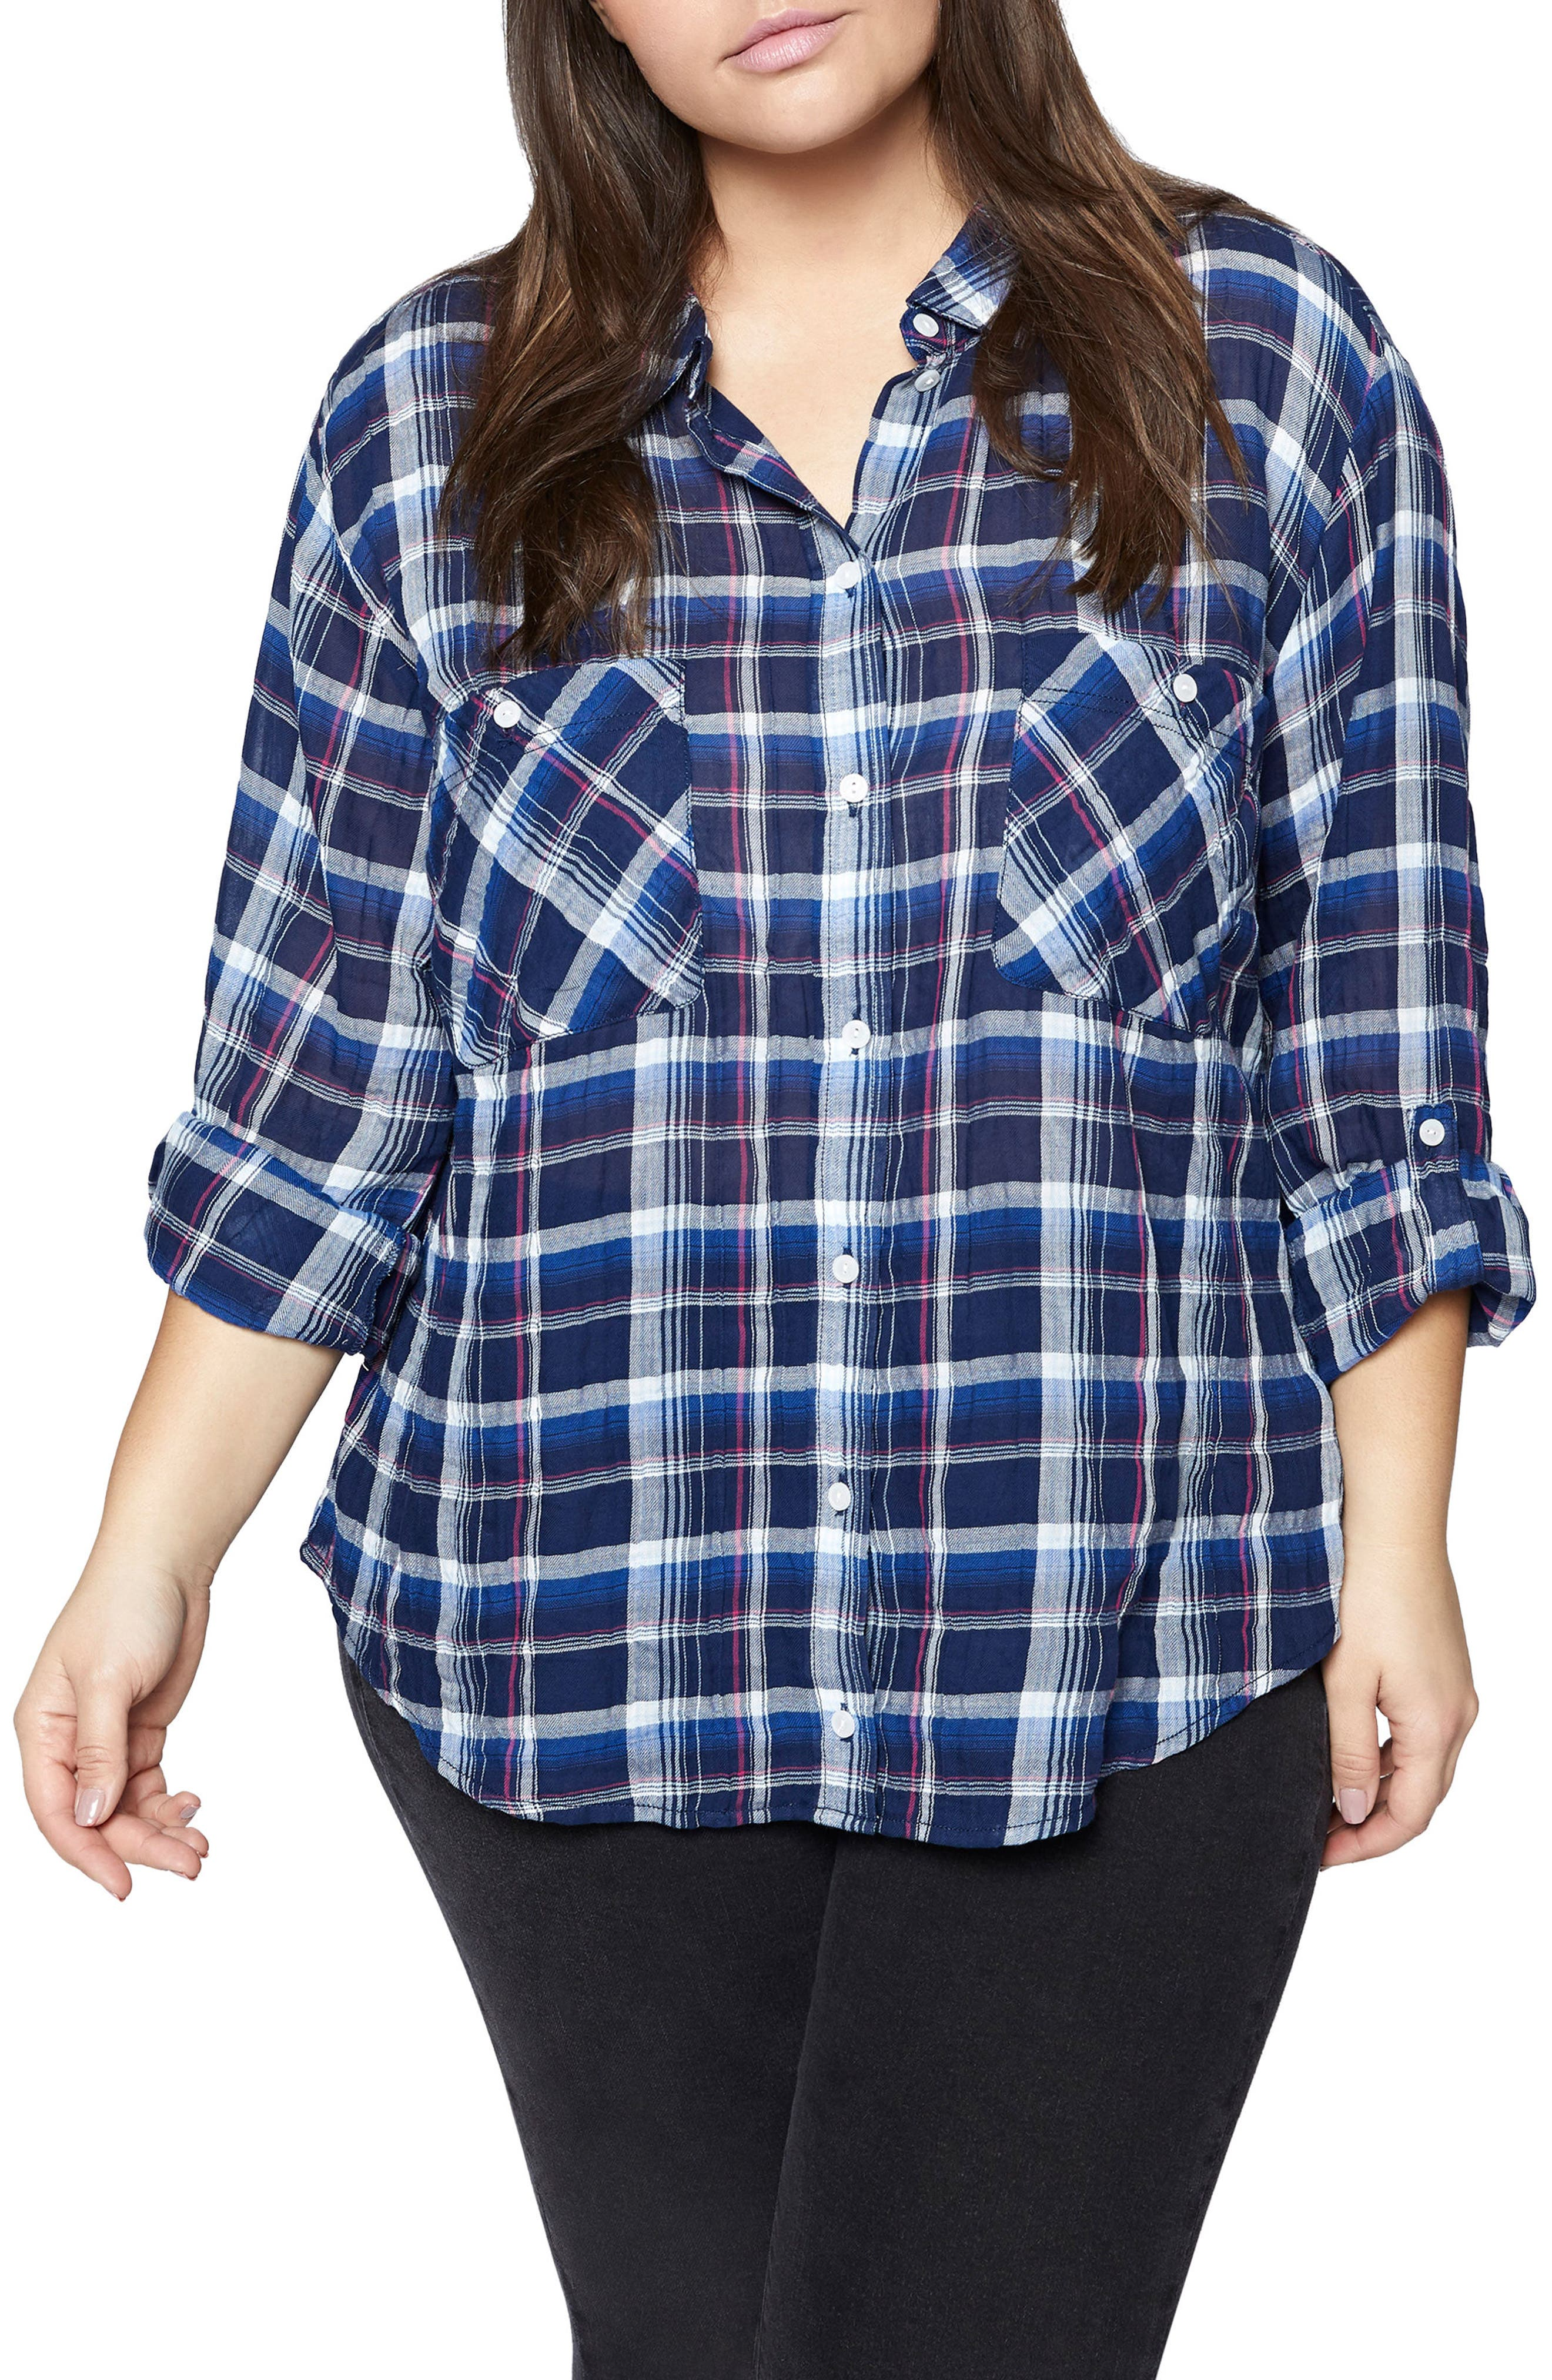 Steady Boyfriend Plaid Shirt,                             Main thumbnail 1, color,                             491